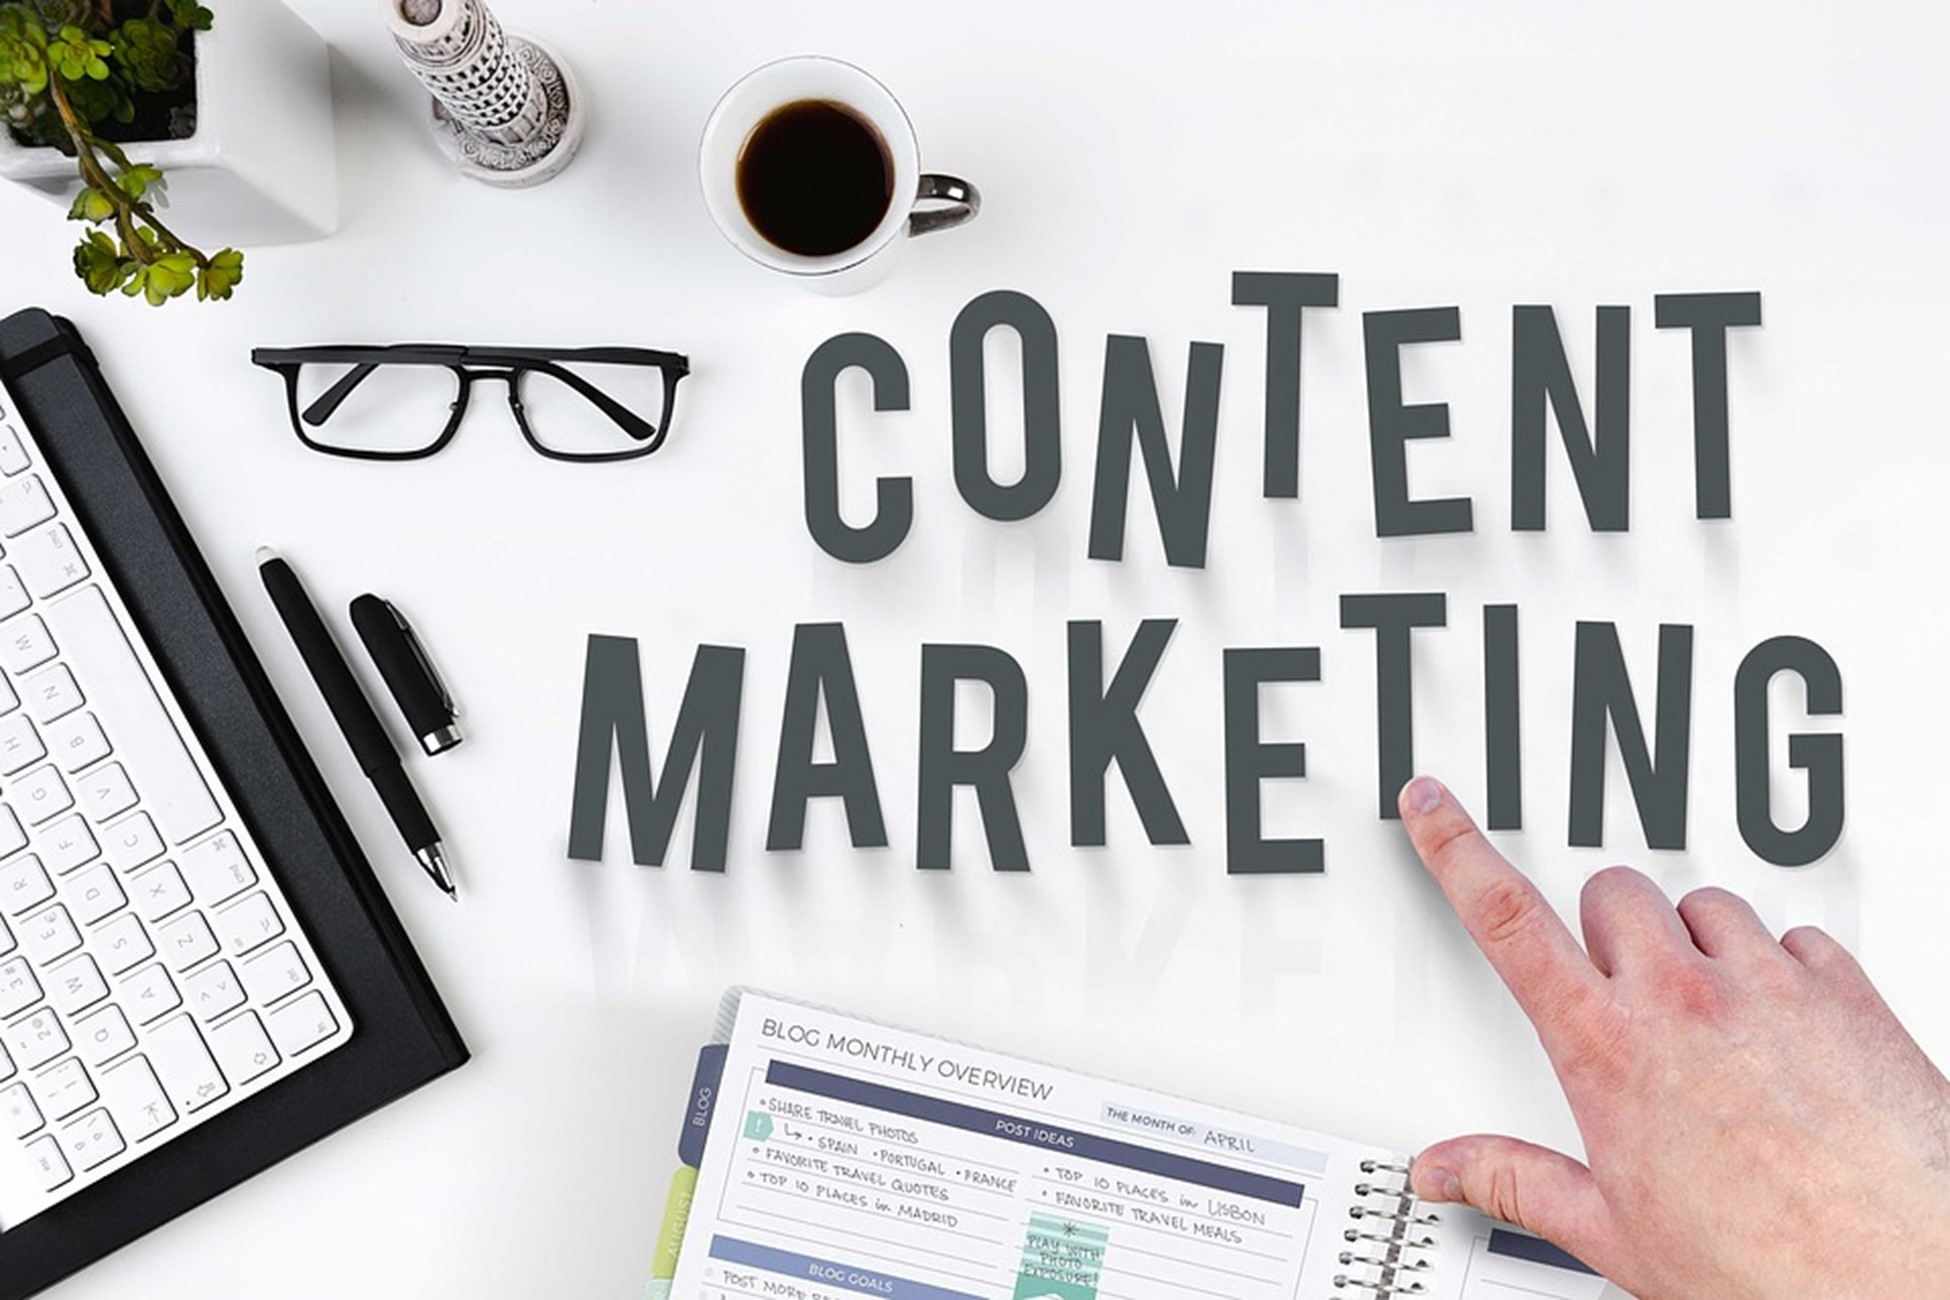 whales of creating content marketing